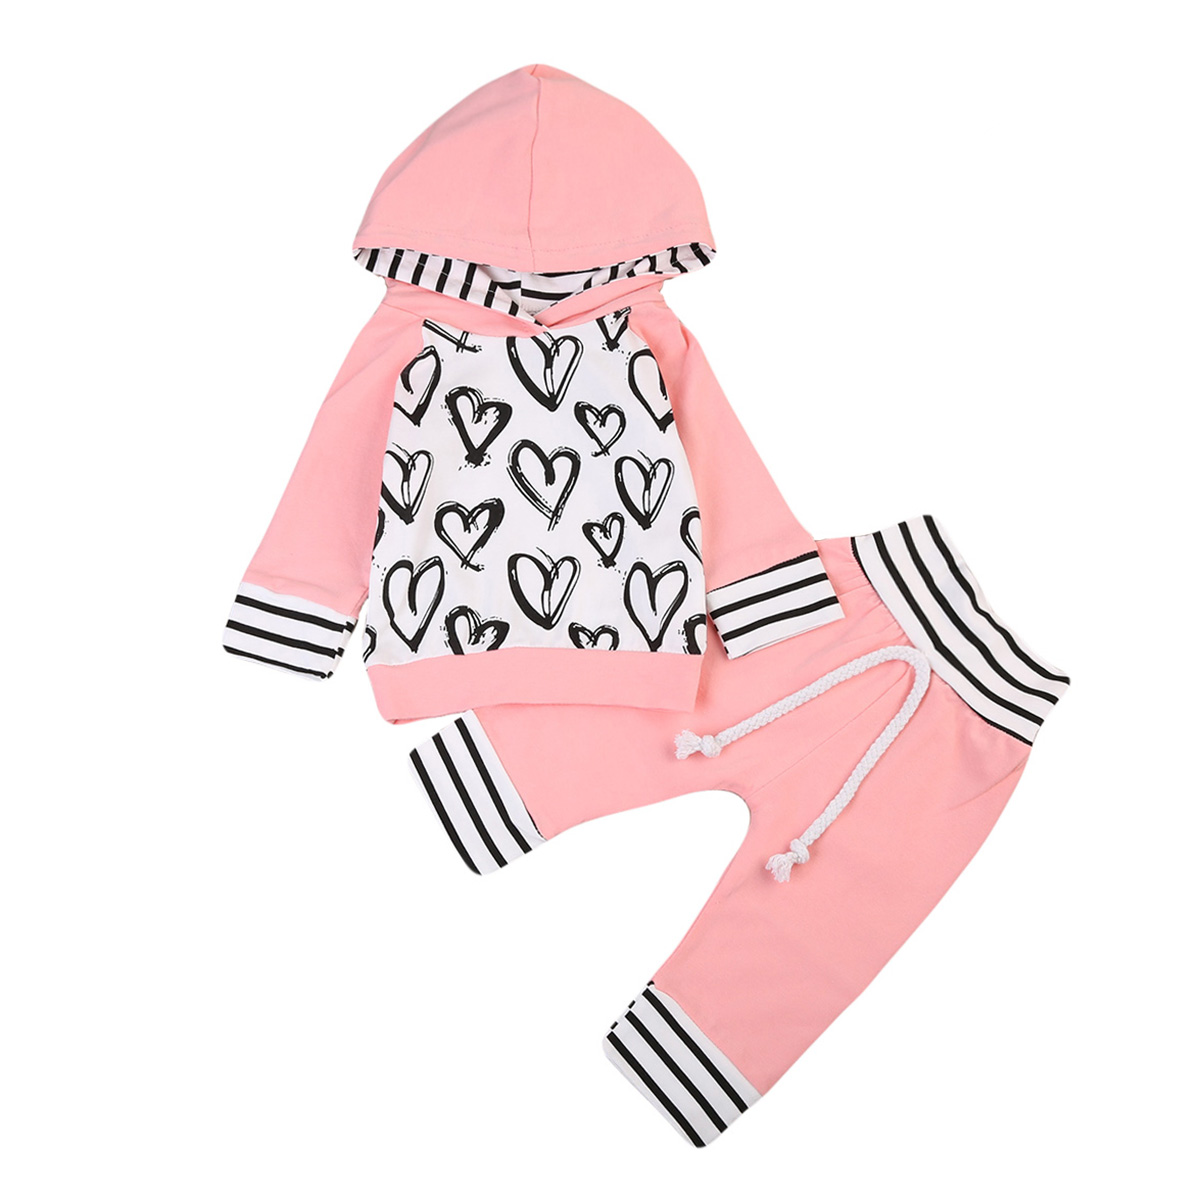 Cute Newborn Kids Baby Girls Clothes Warm Hooded T-shirt Long Sleeve Tops+Long Pants Outfits 2PCS Baby Clothing Set